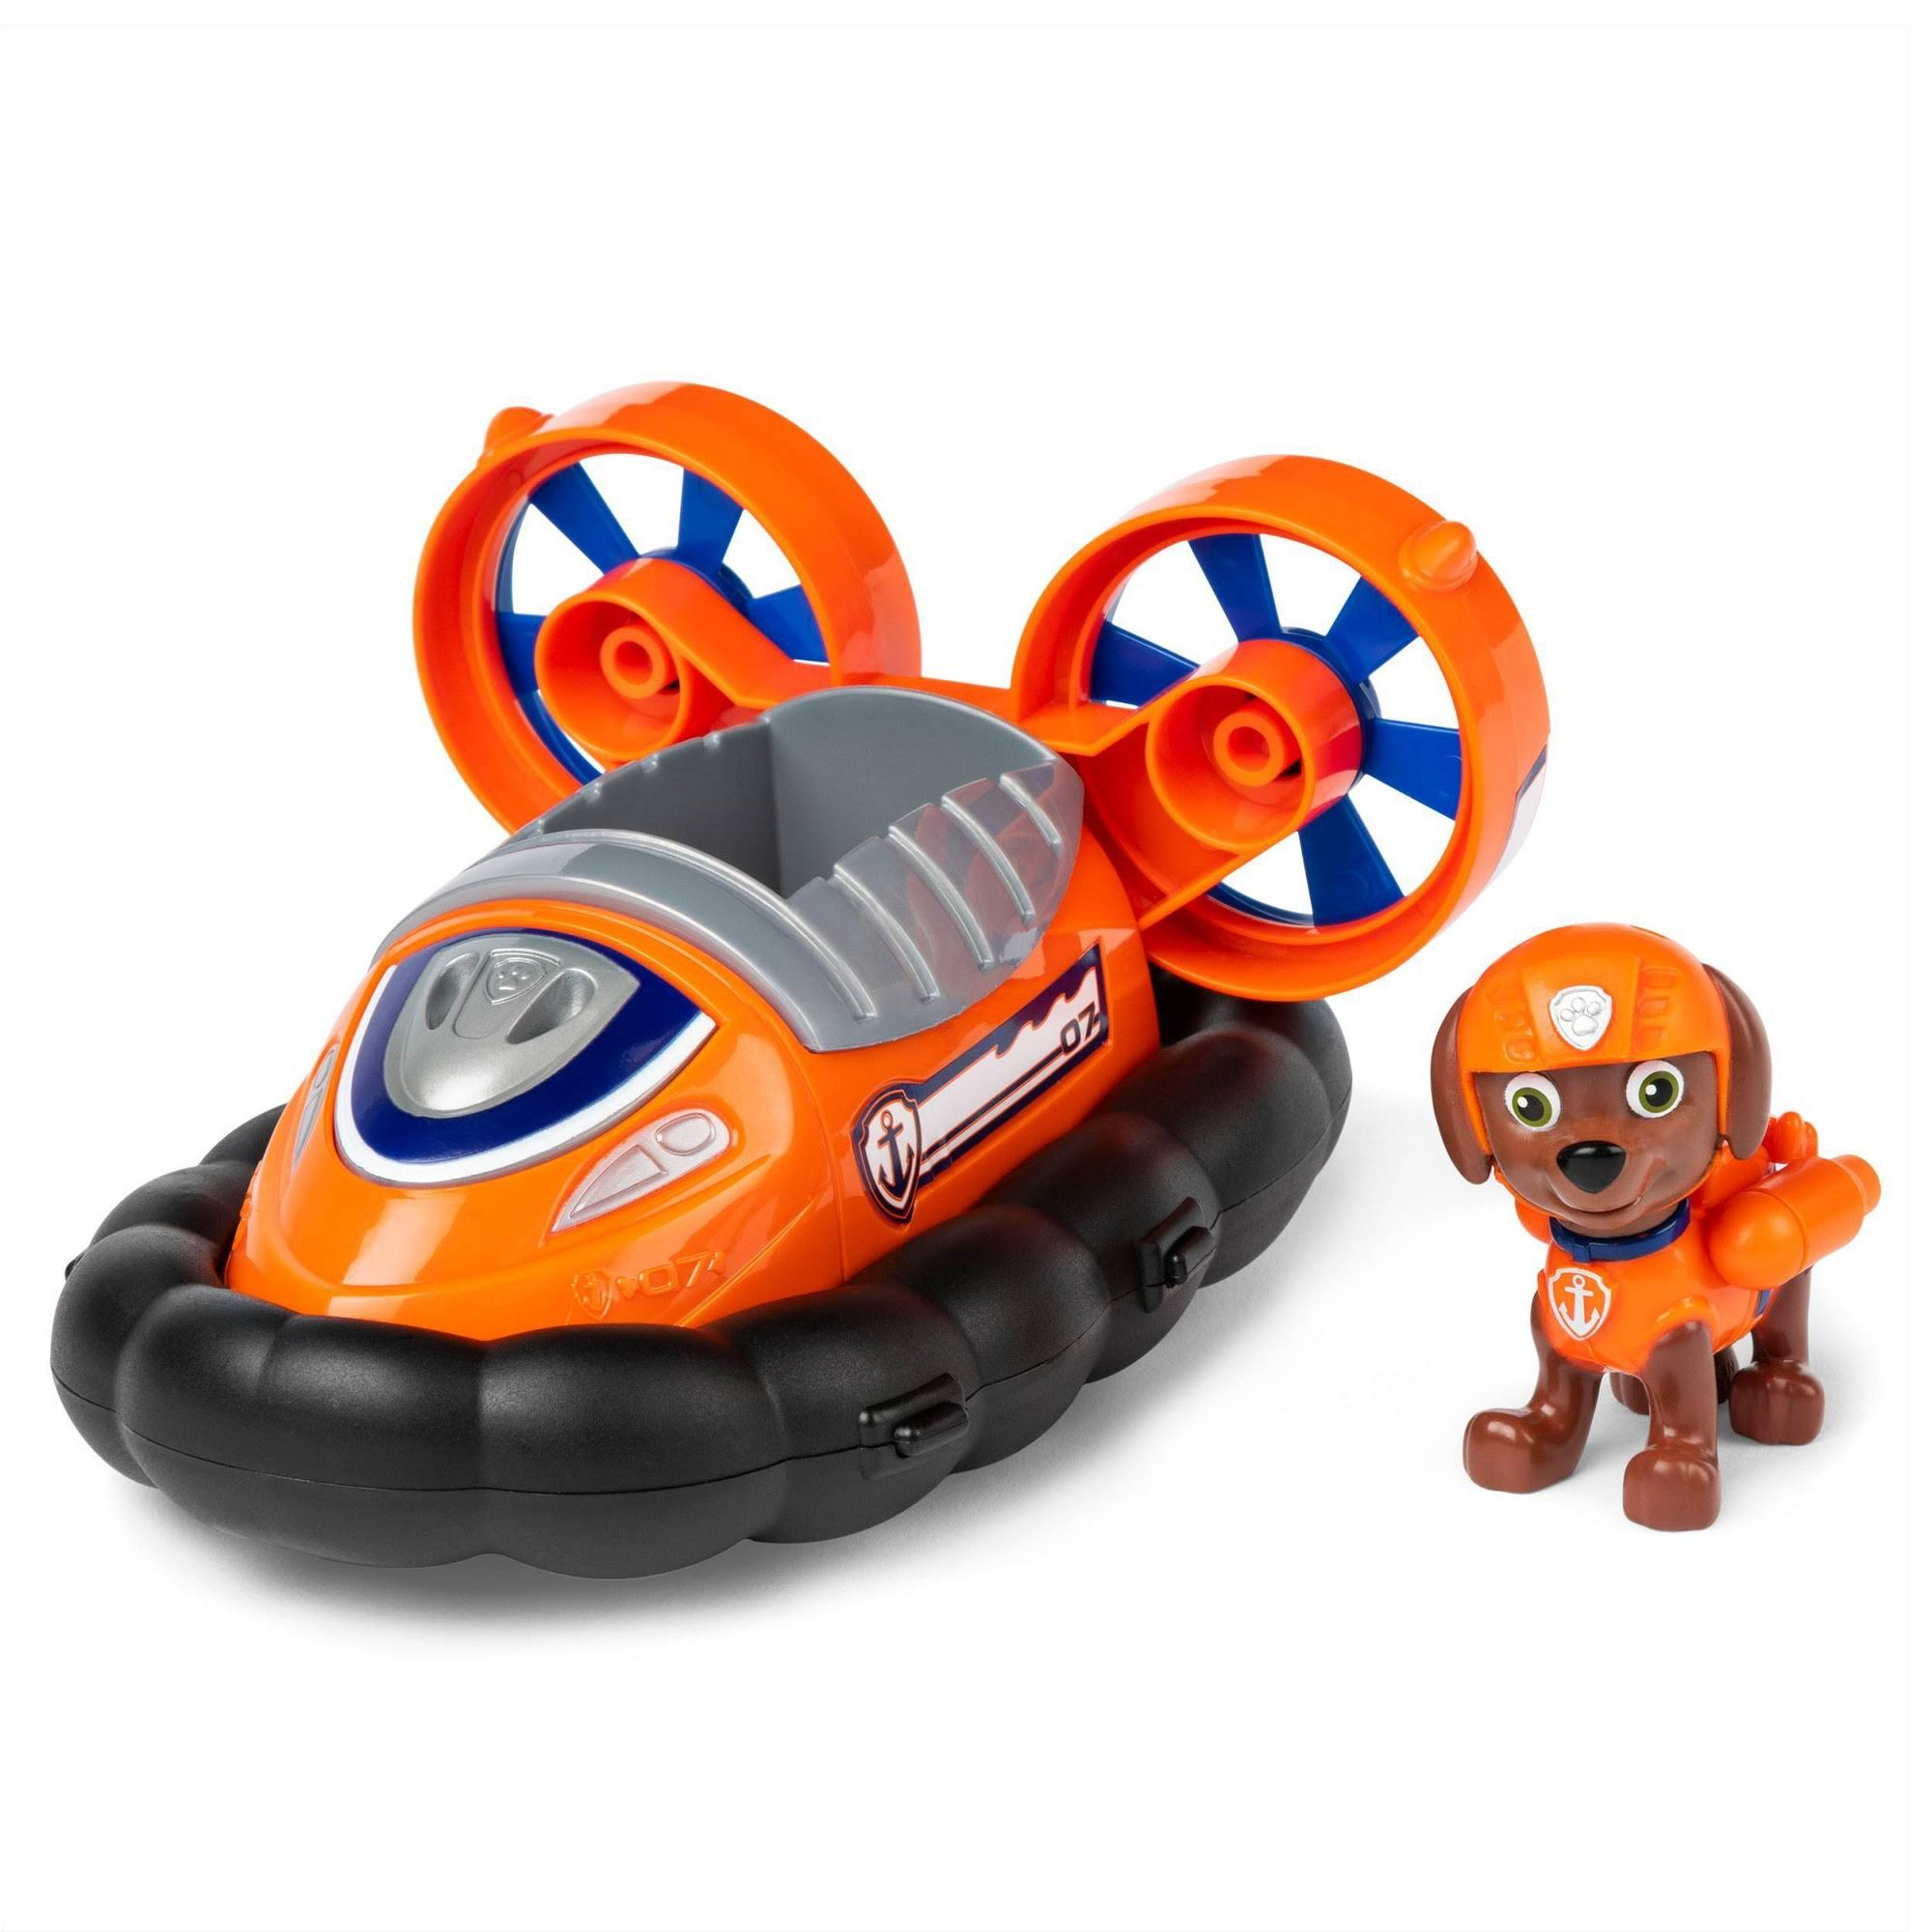 Paw Patrol, Zuma?s Hovercraft Vehicle with Collectible Figure, for Kids Aged 3 and Up